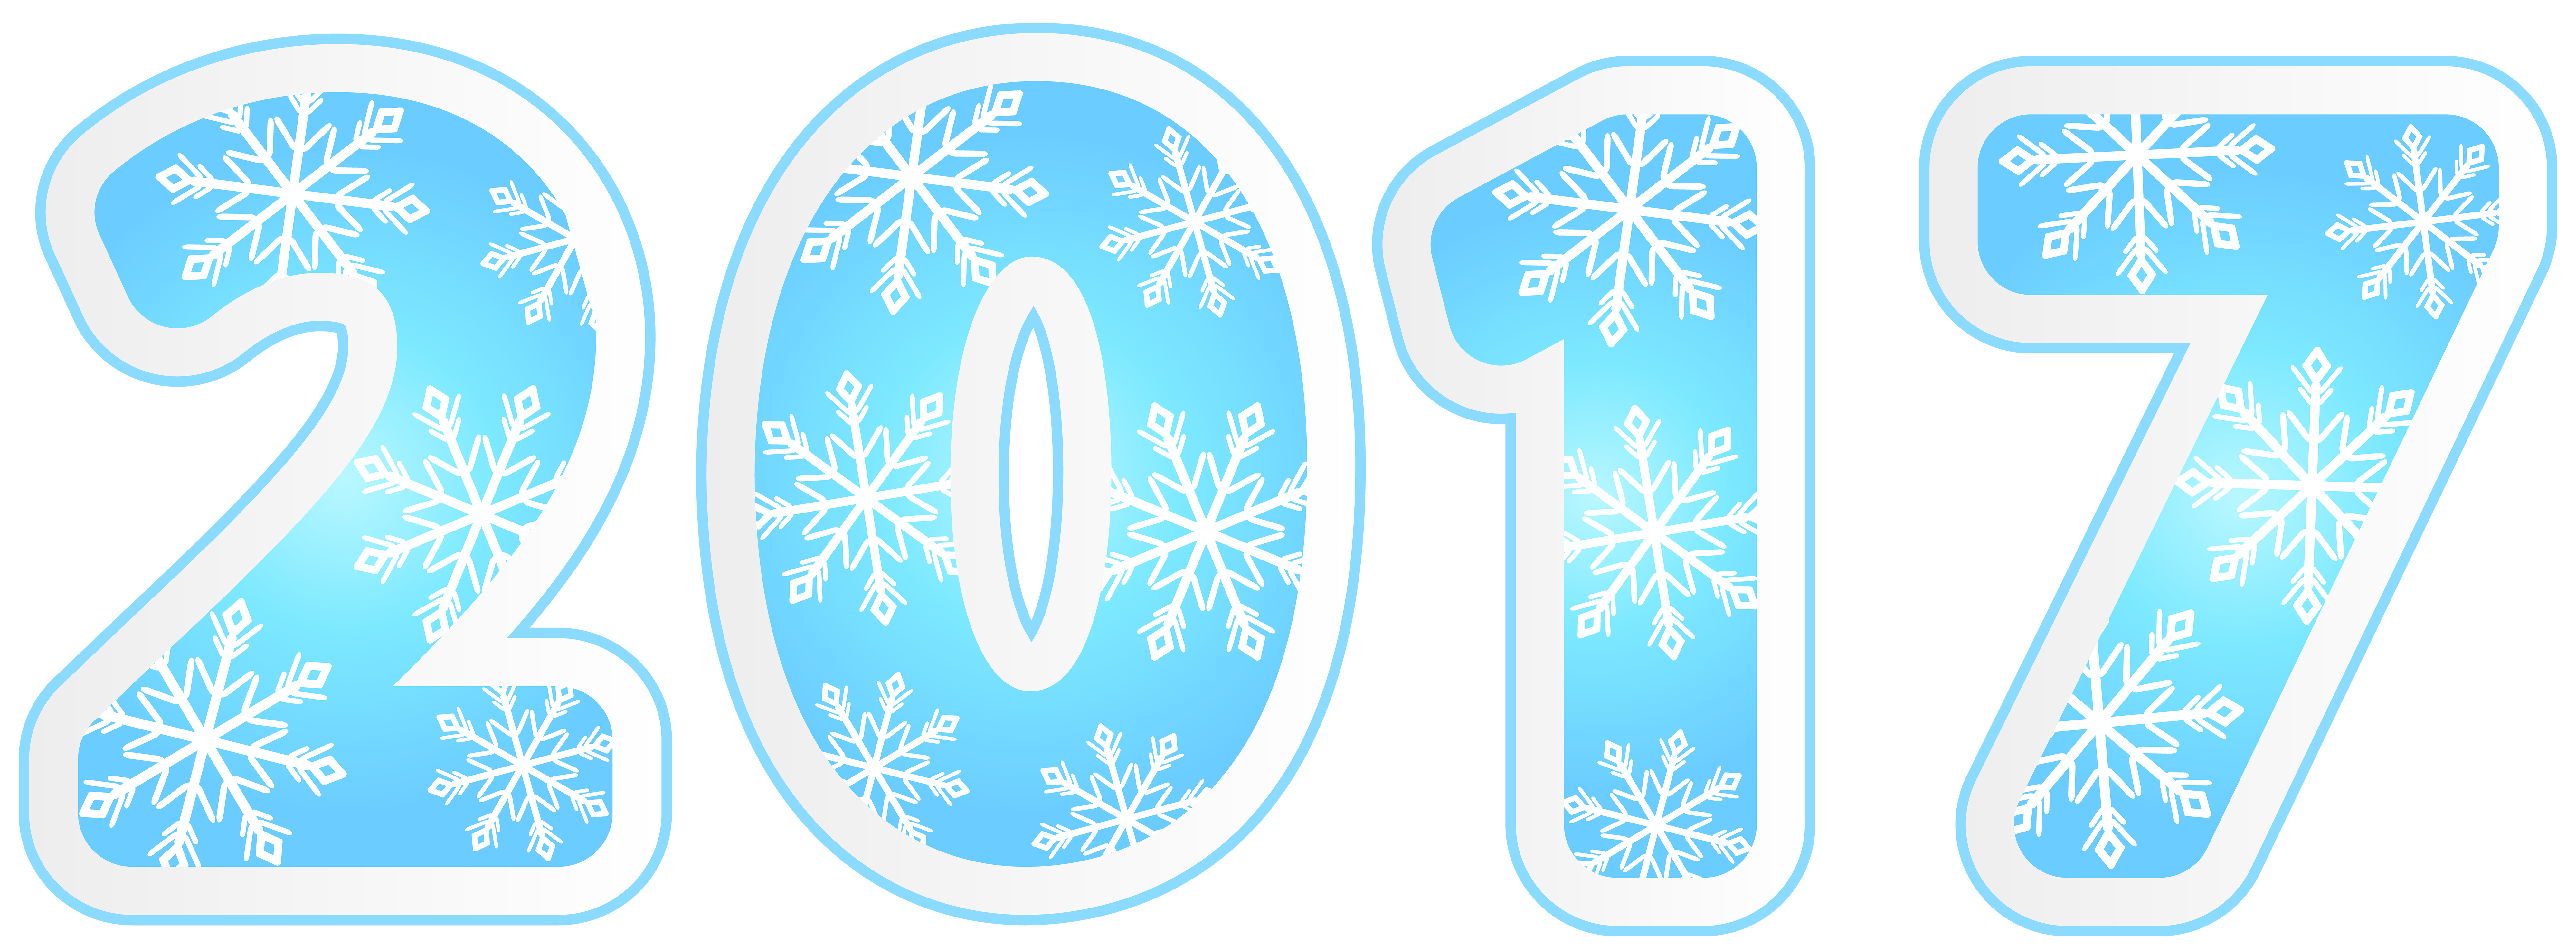 with snowflakes png. 2017 clipart blue